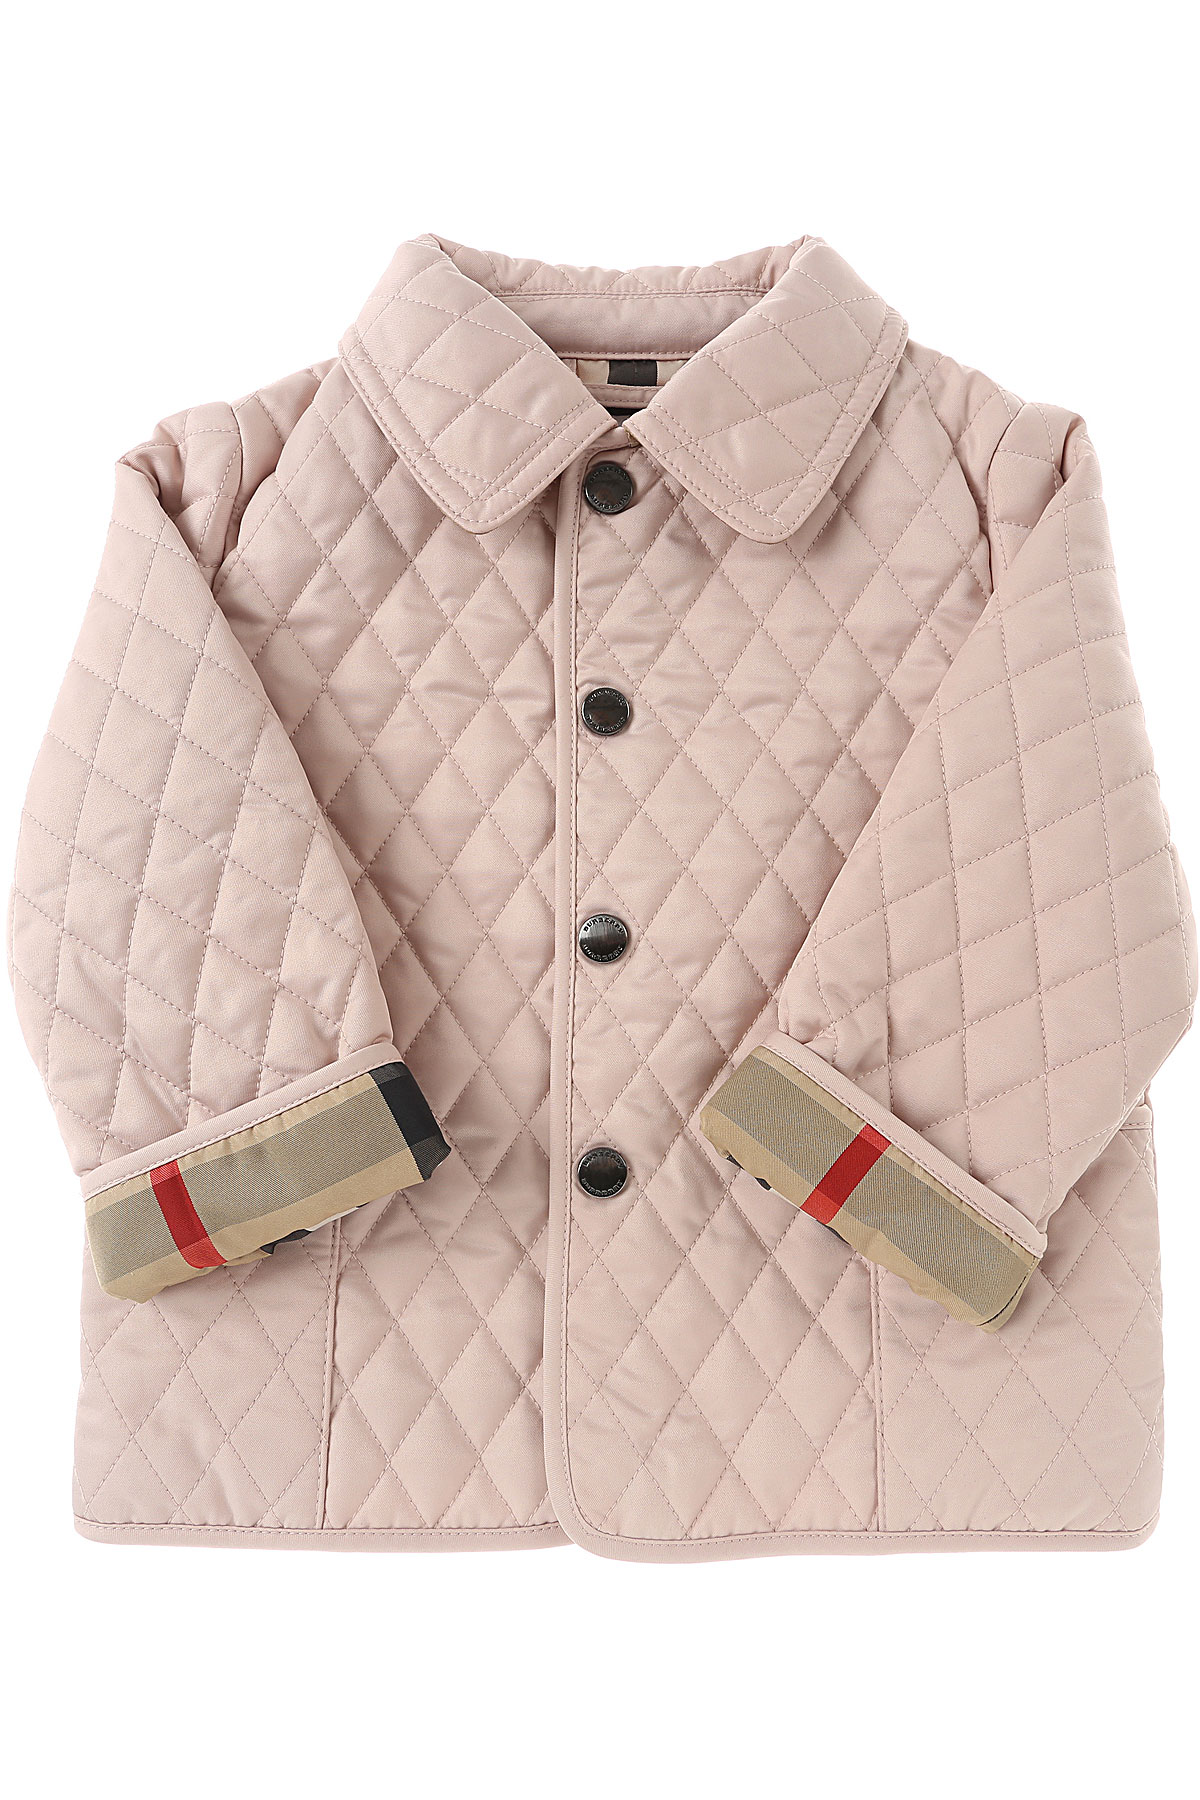 Image of Burberry Baby Jacket for Girls, Pink, polyester, 2017, 12M 18M 2Y 6M